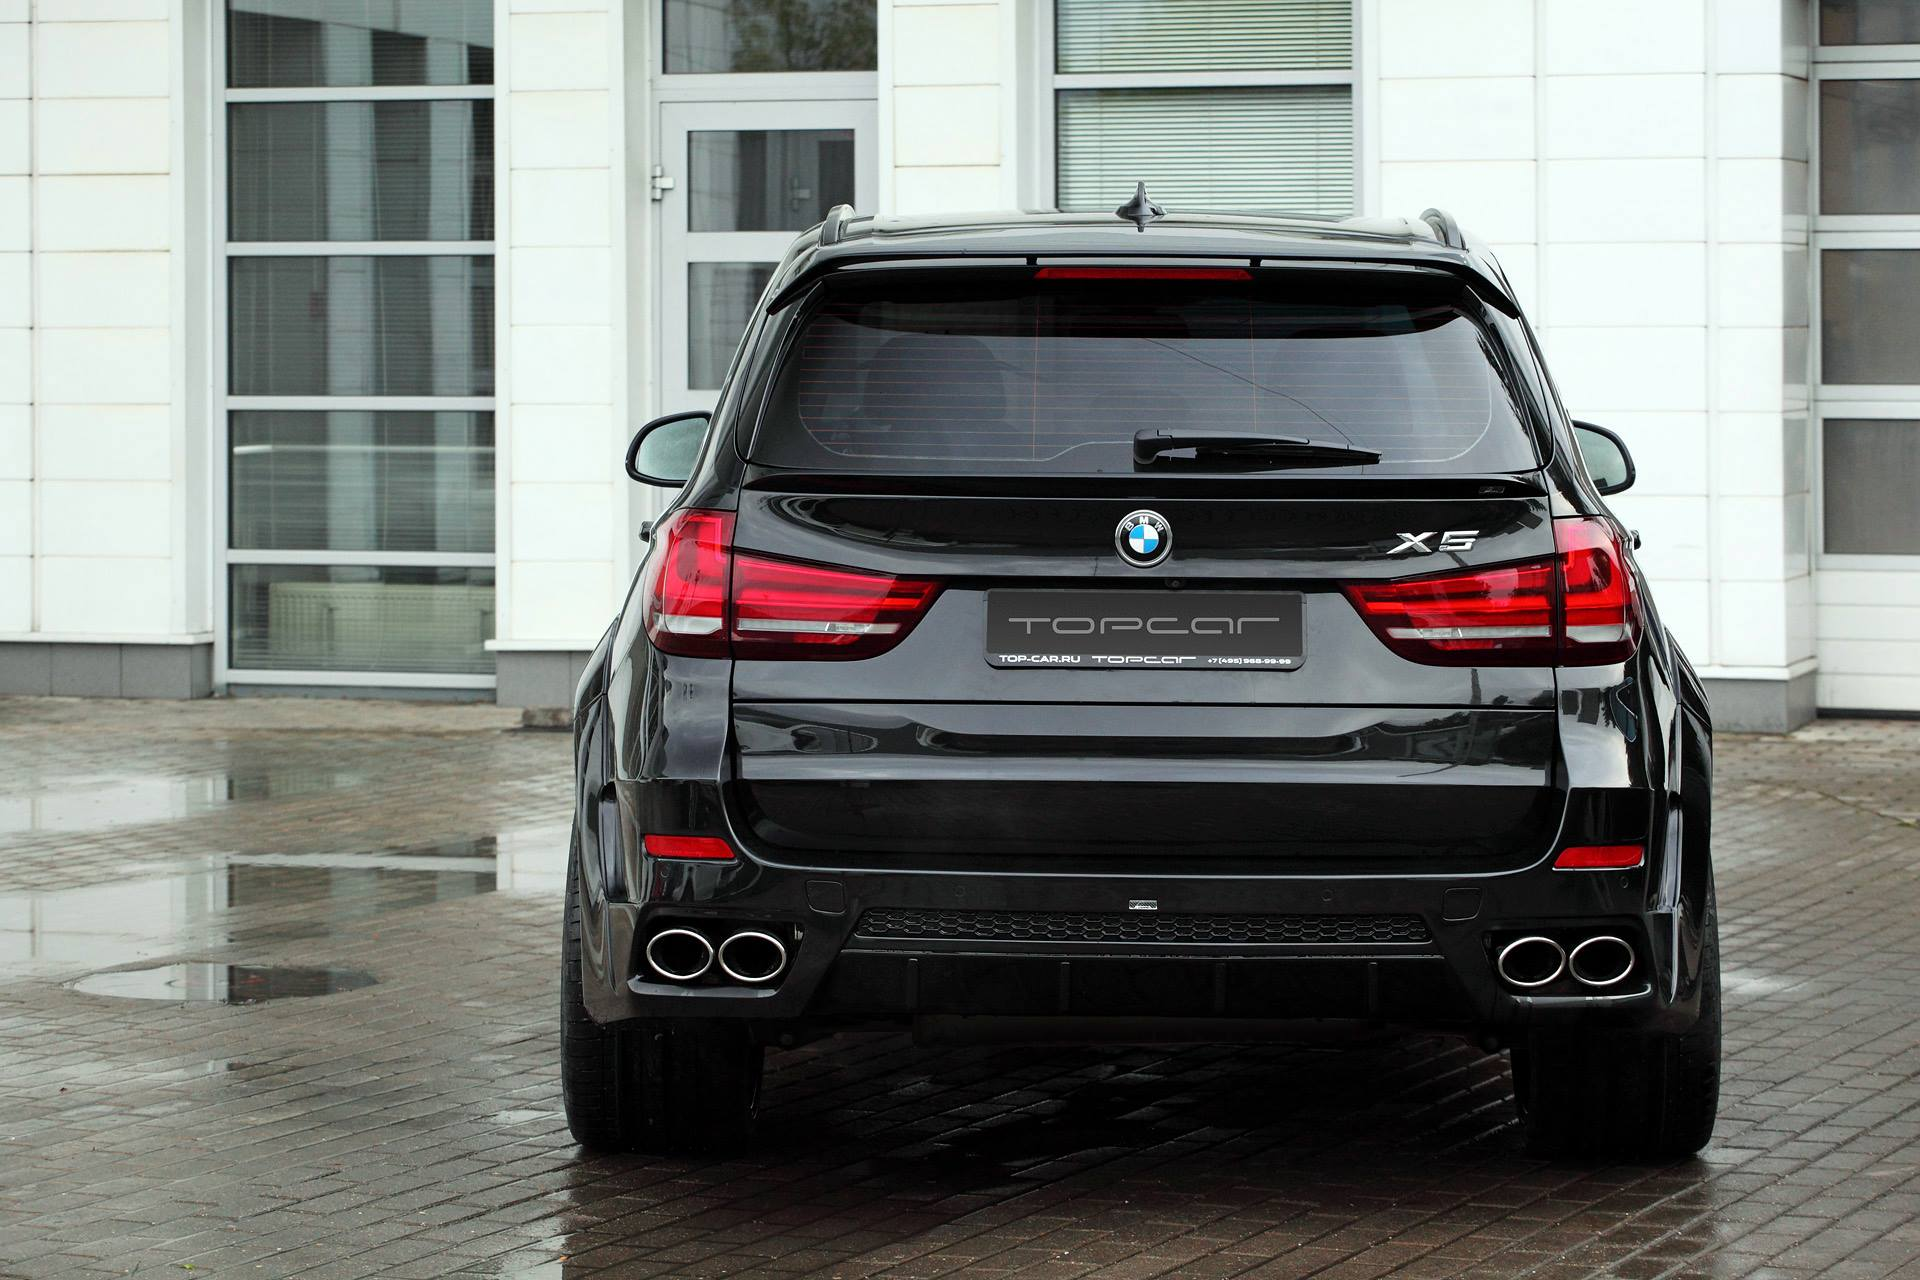 Bmw X5 With Lumma Clr Rs Looks Sinister In Black